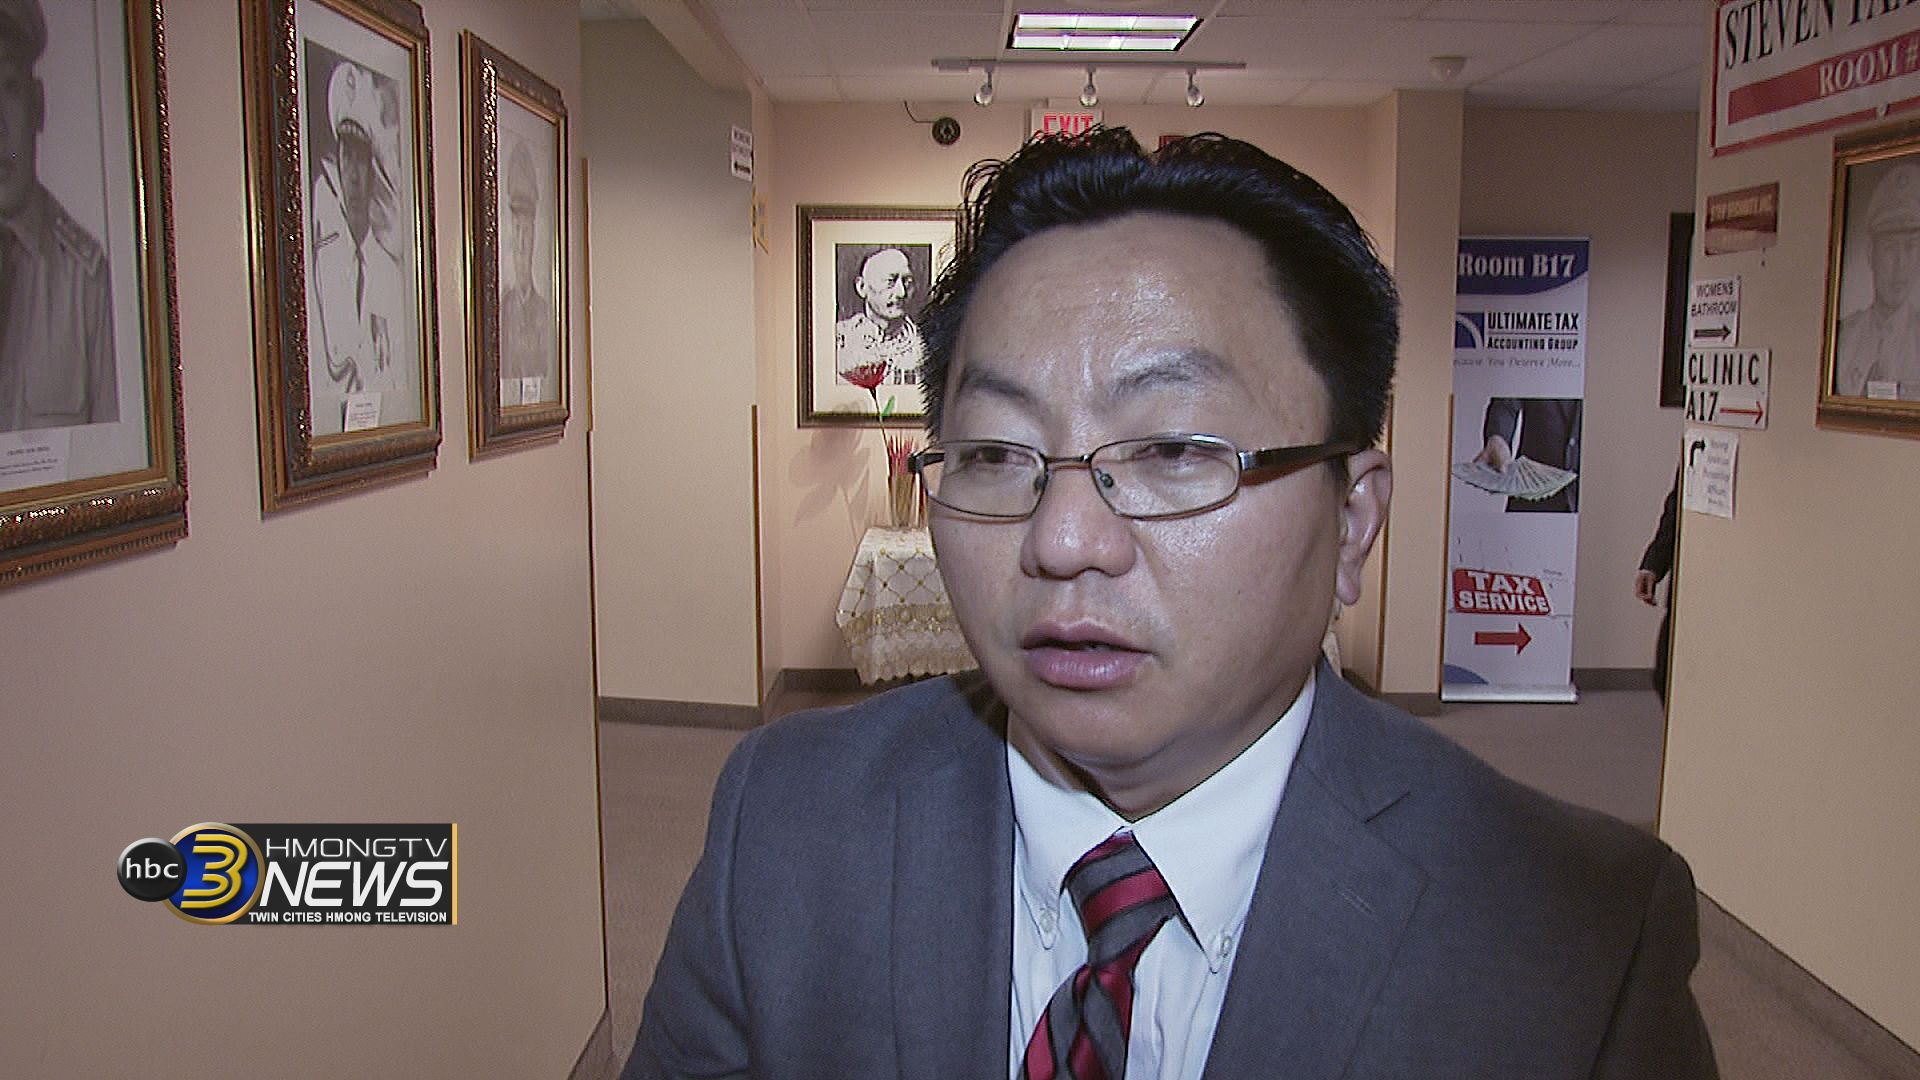 ATTORNEY PAUL (PAO) YANG ANNOUNCES HIS CANDIDACY FOR JUDGE OF RAMSEY COUNTY 2ND DIST. COURT.